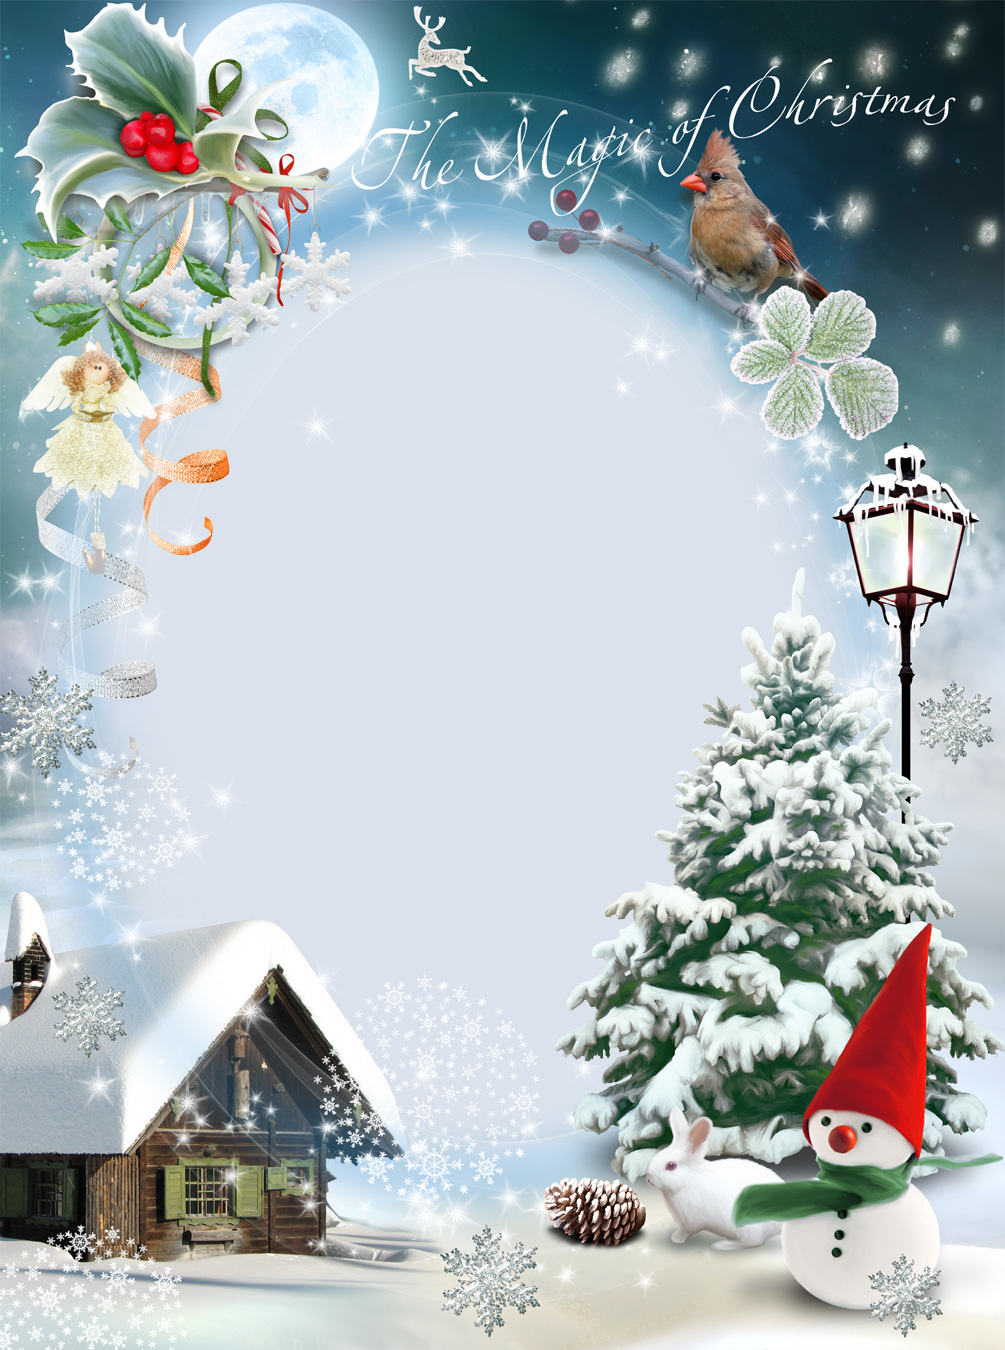 Merry Christmas Photo Frames | LoonaPix – Christmas Photo Editor!